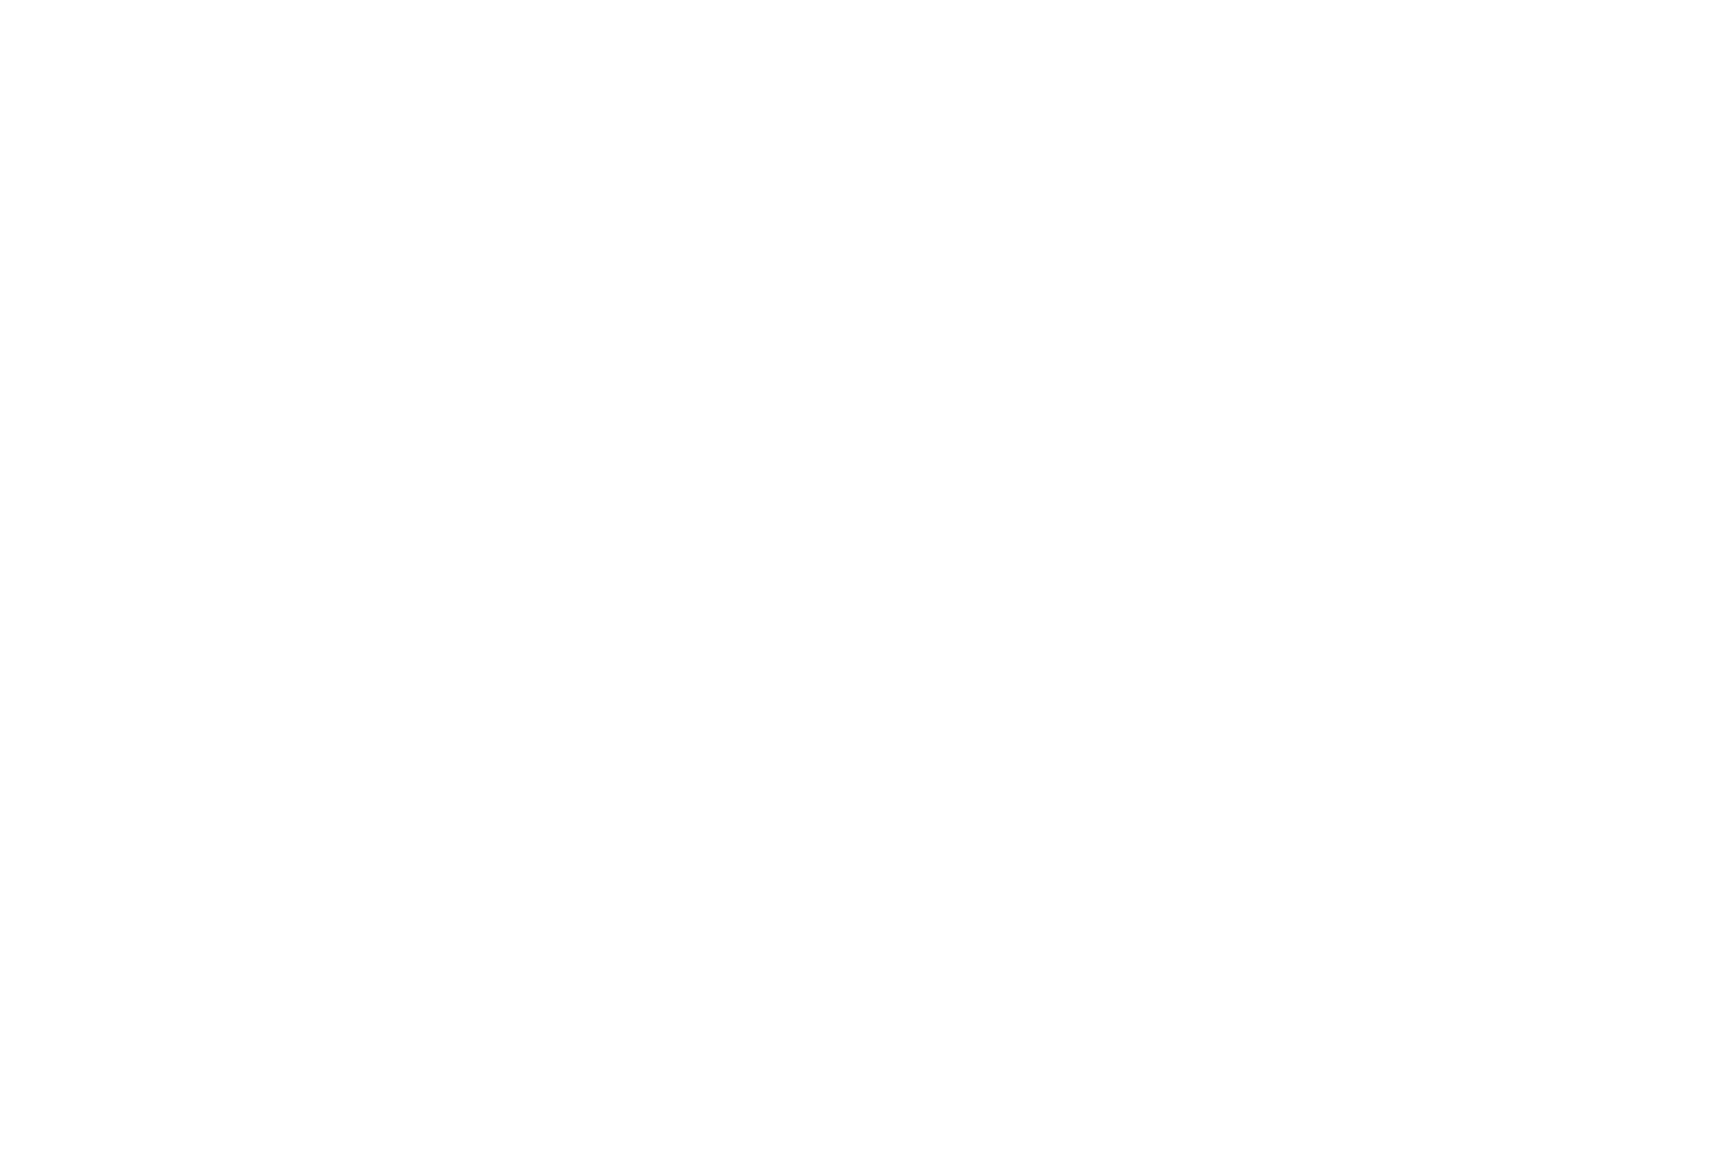 OFFICIAL SELECTION - Classical Arts Film